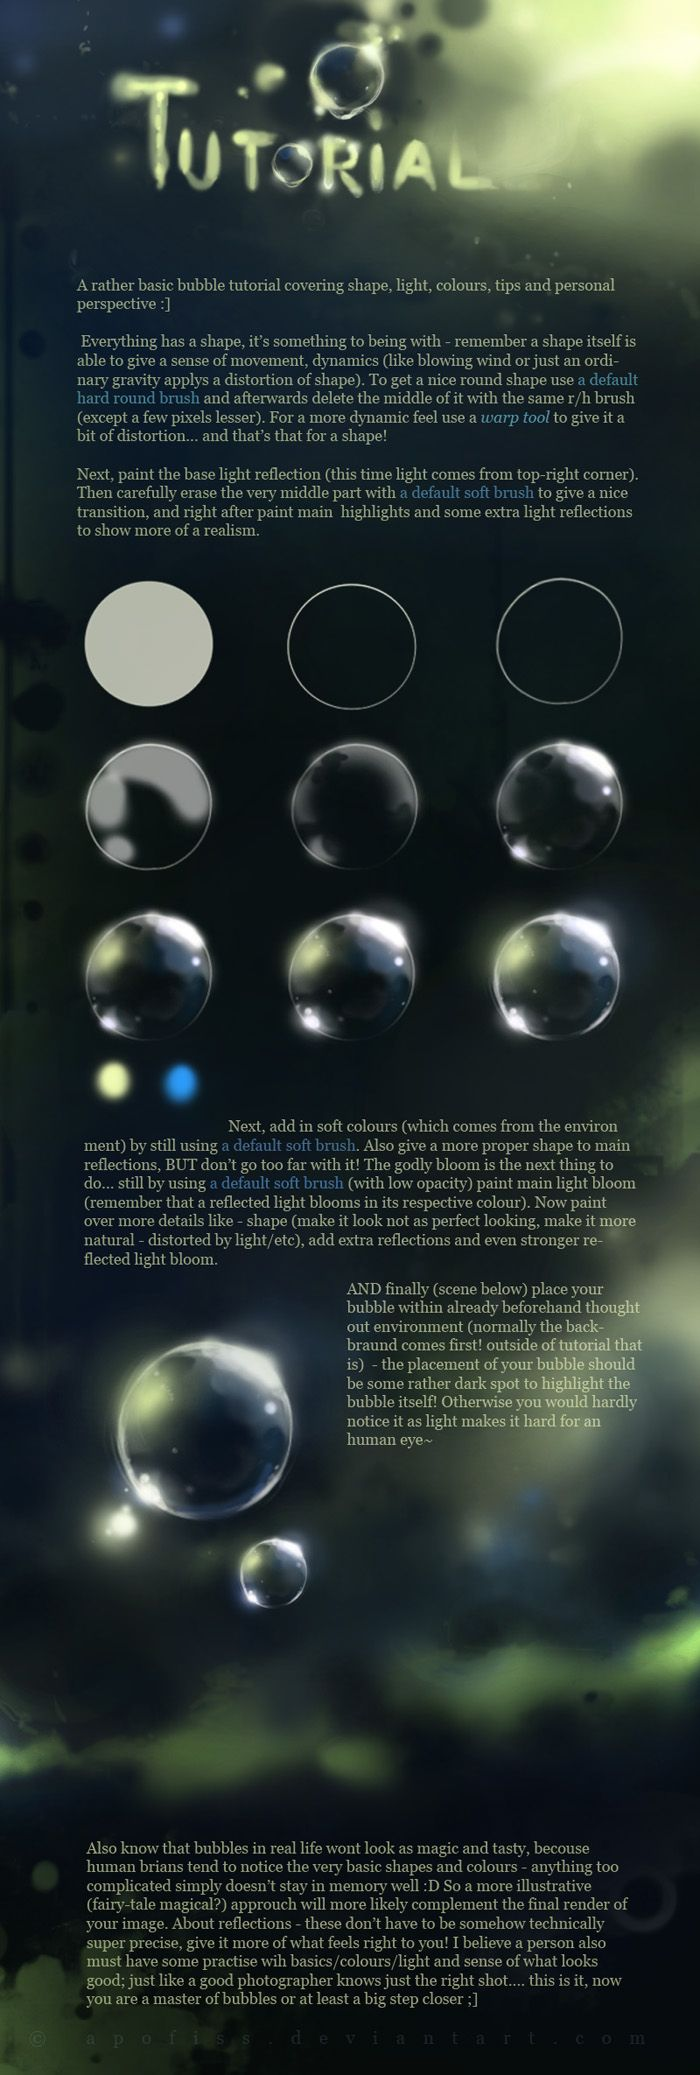 MAGIC bubble tutorial by *Apofiss on deviantART ✤ || CHARACTER DESIGN REFERENCES | キャラクターデザイン | •